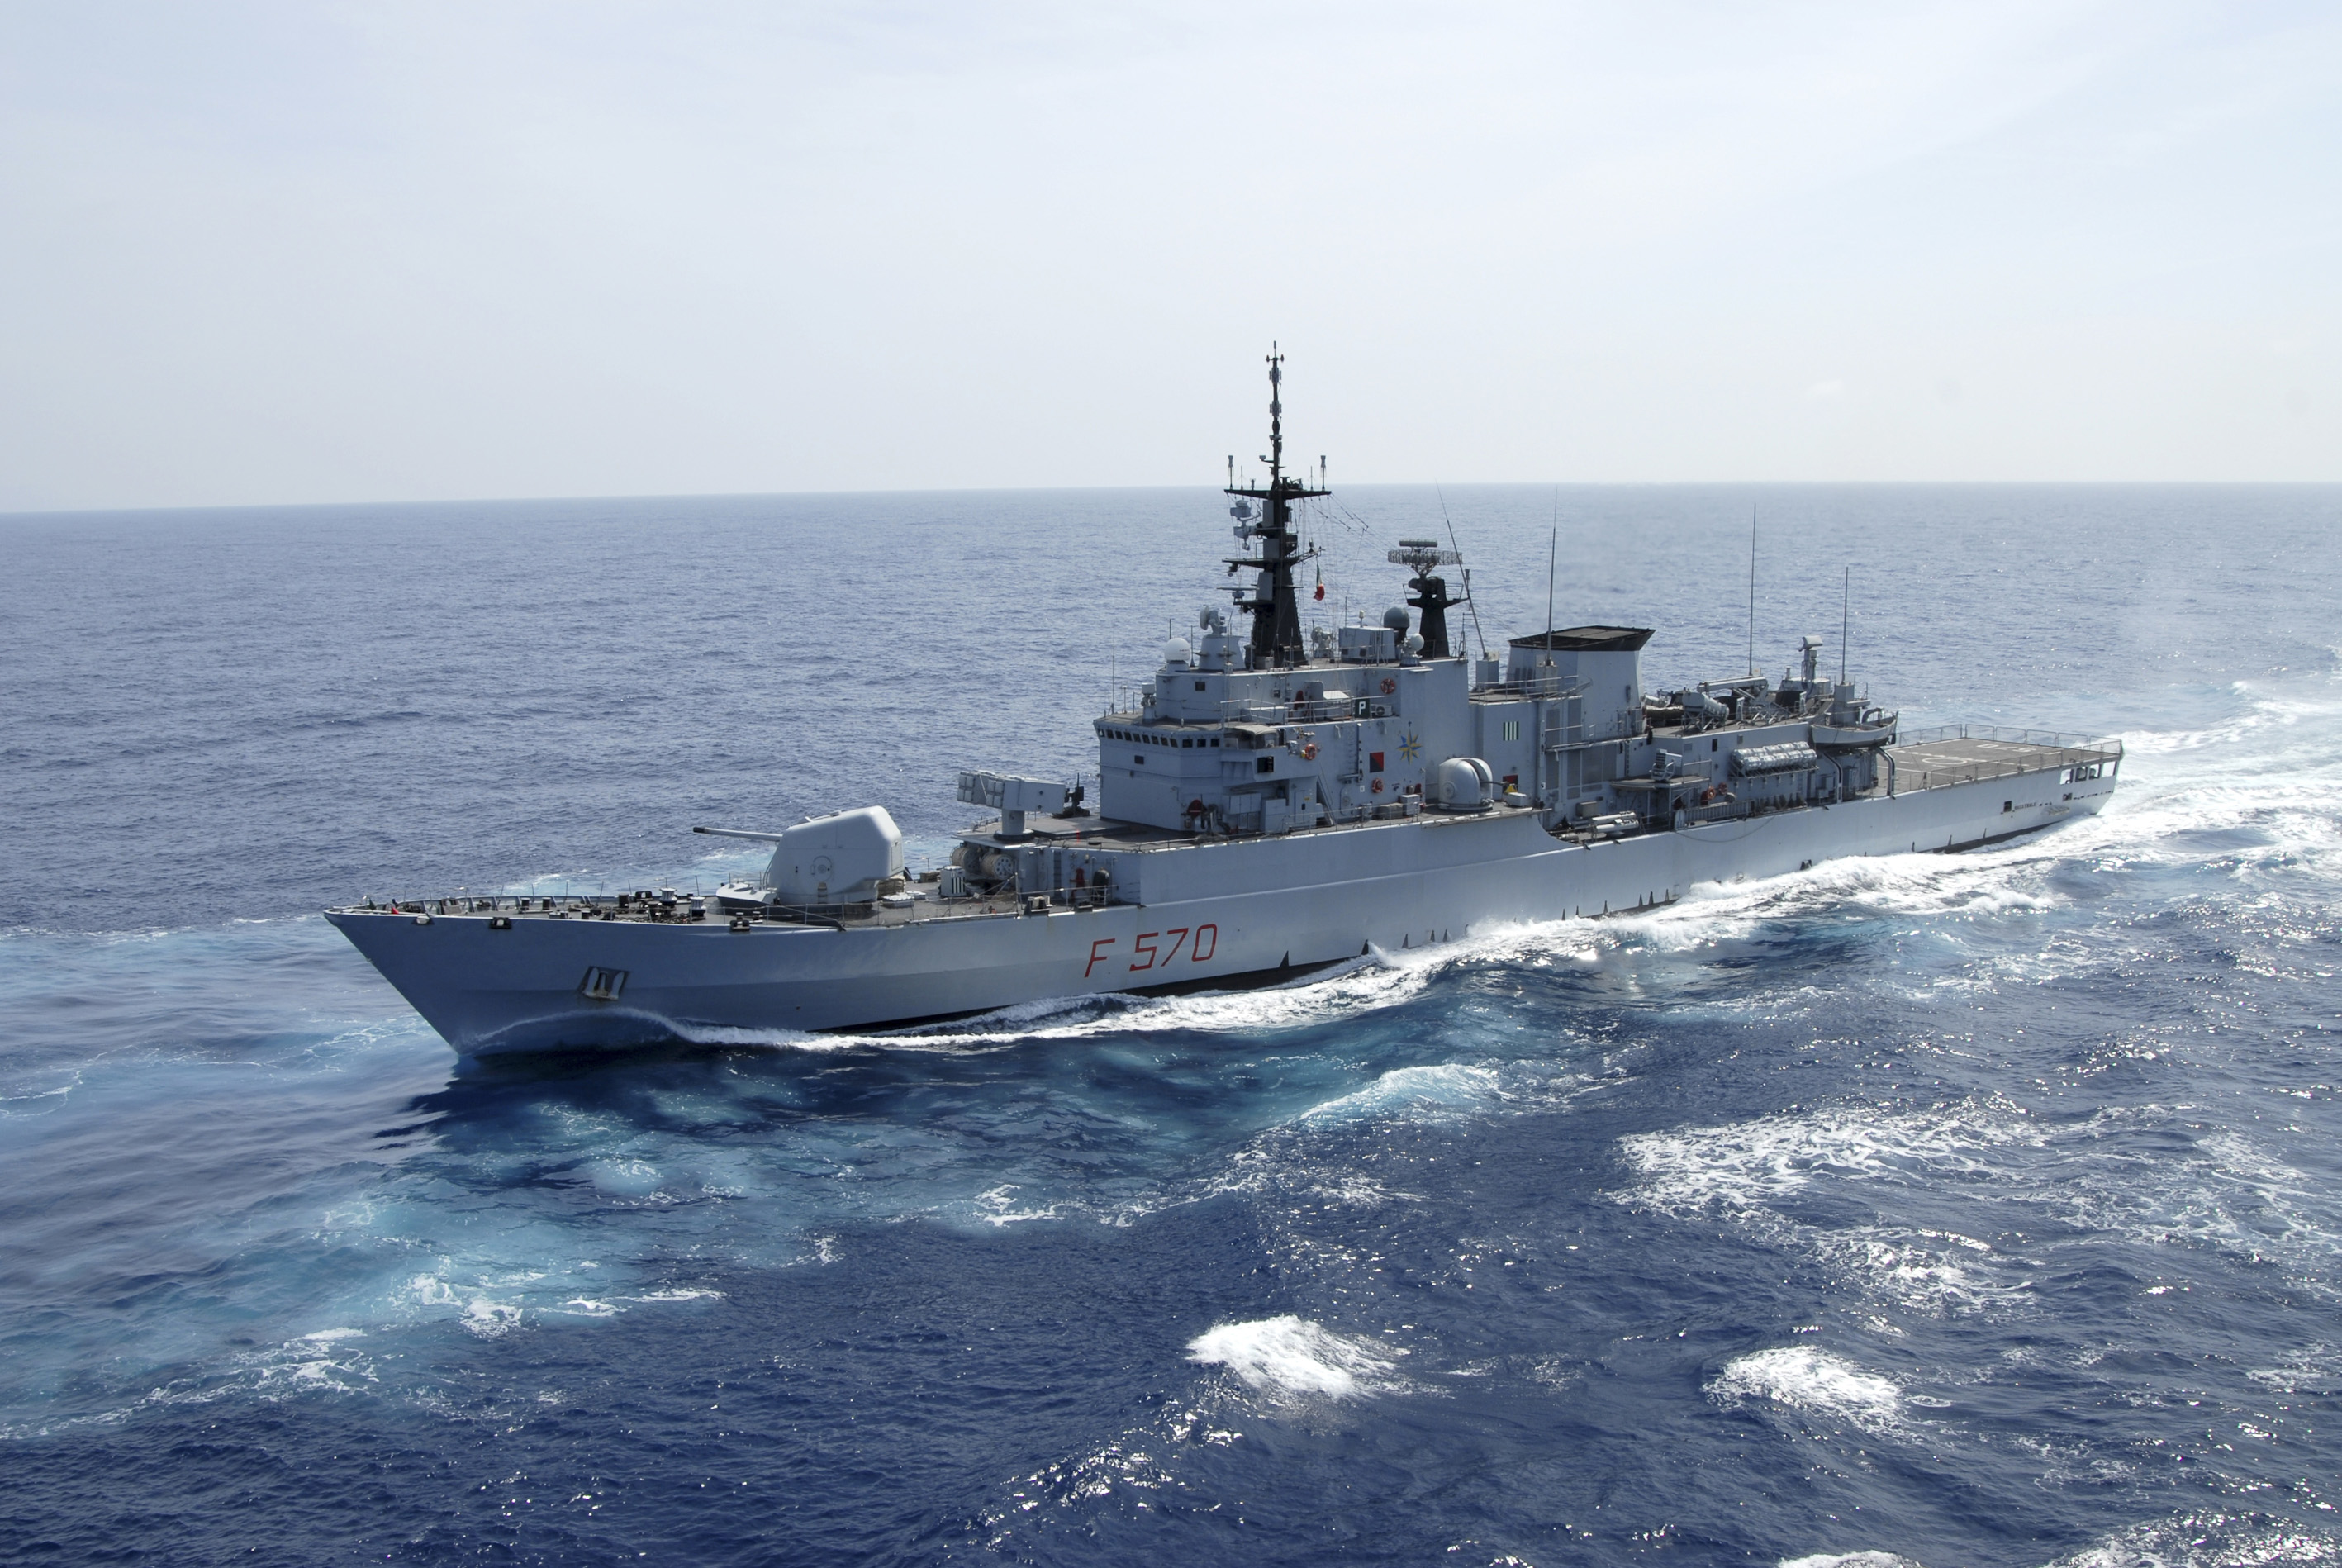 Maestrale-class frigate (photo grabbed from Marina Militare [Italian